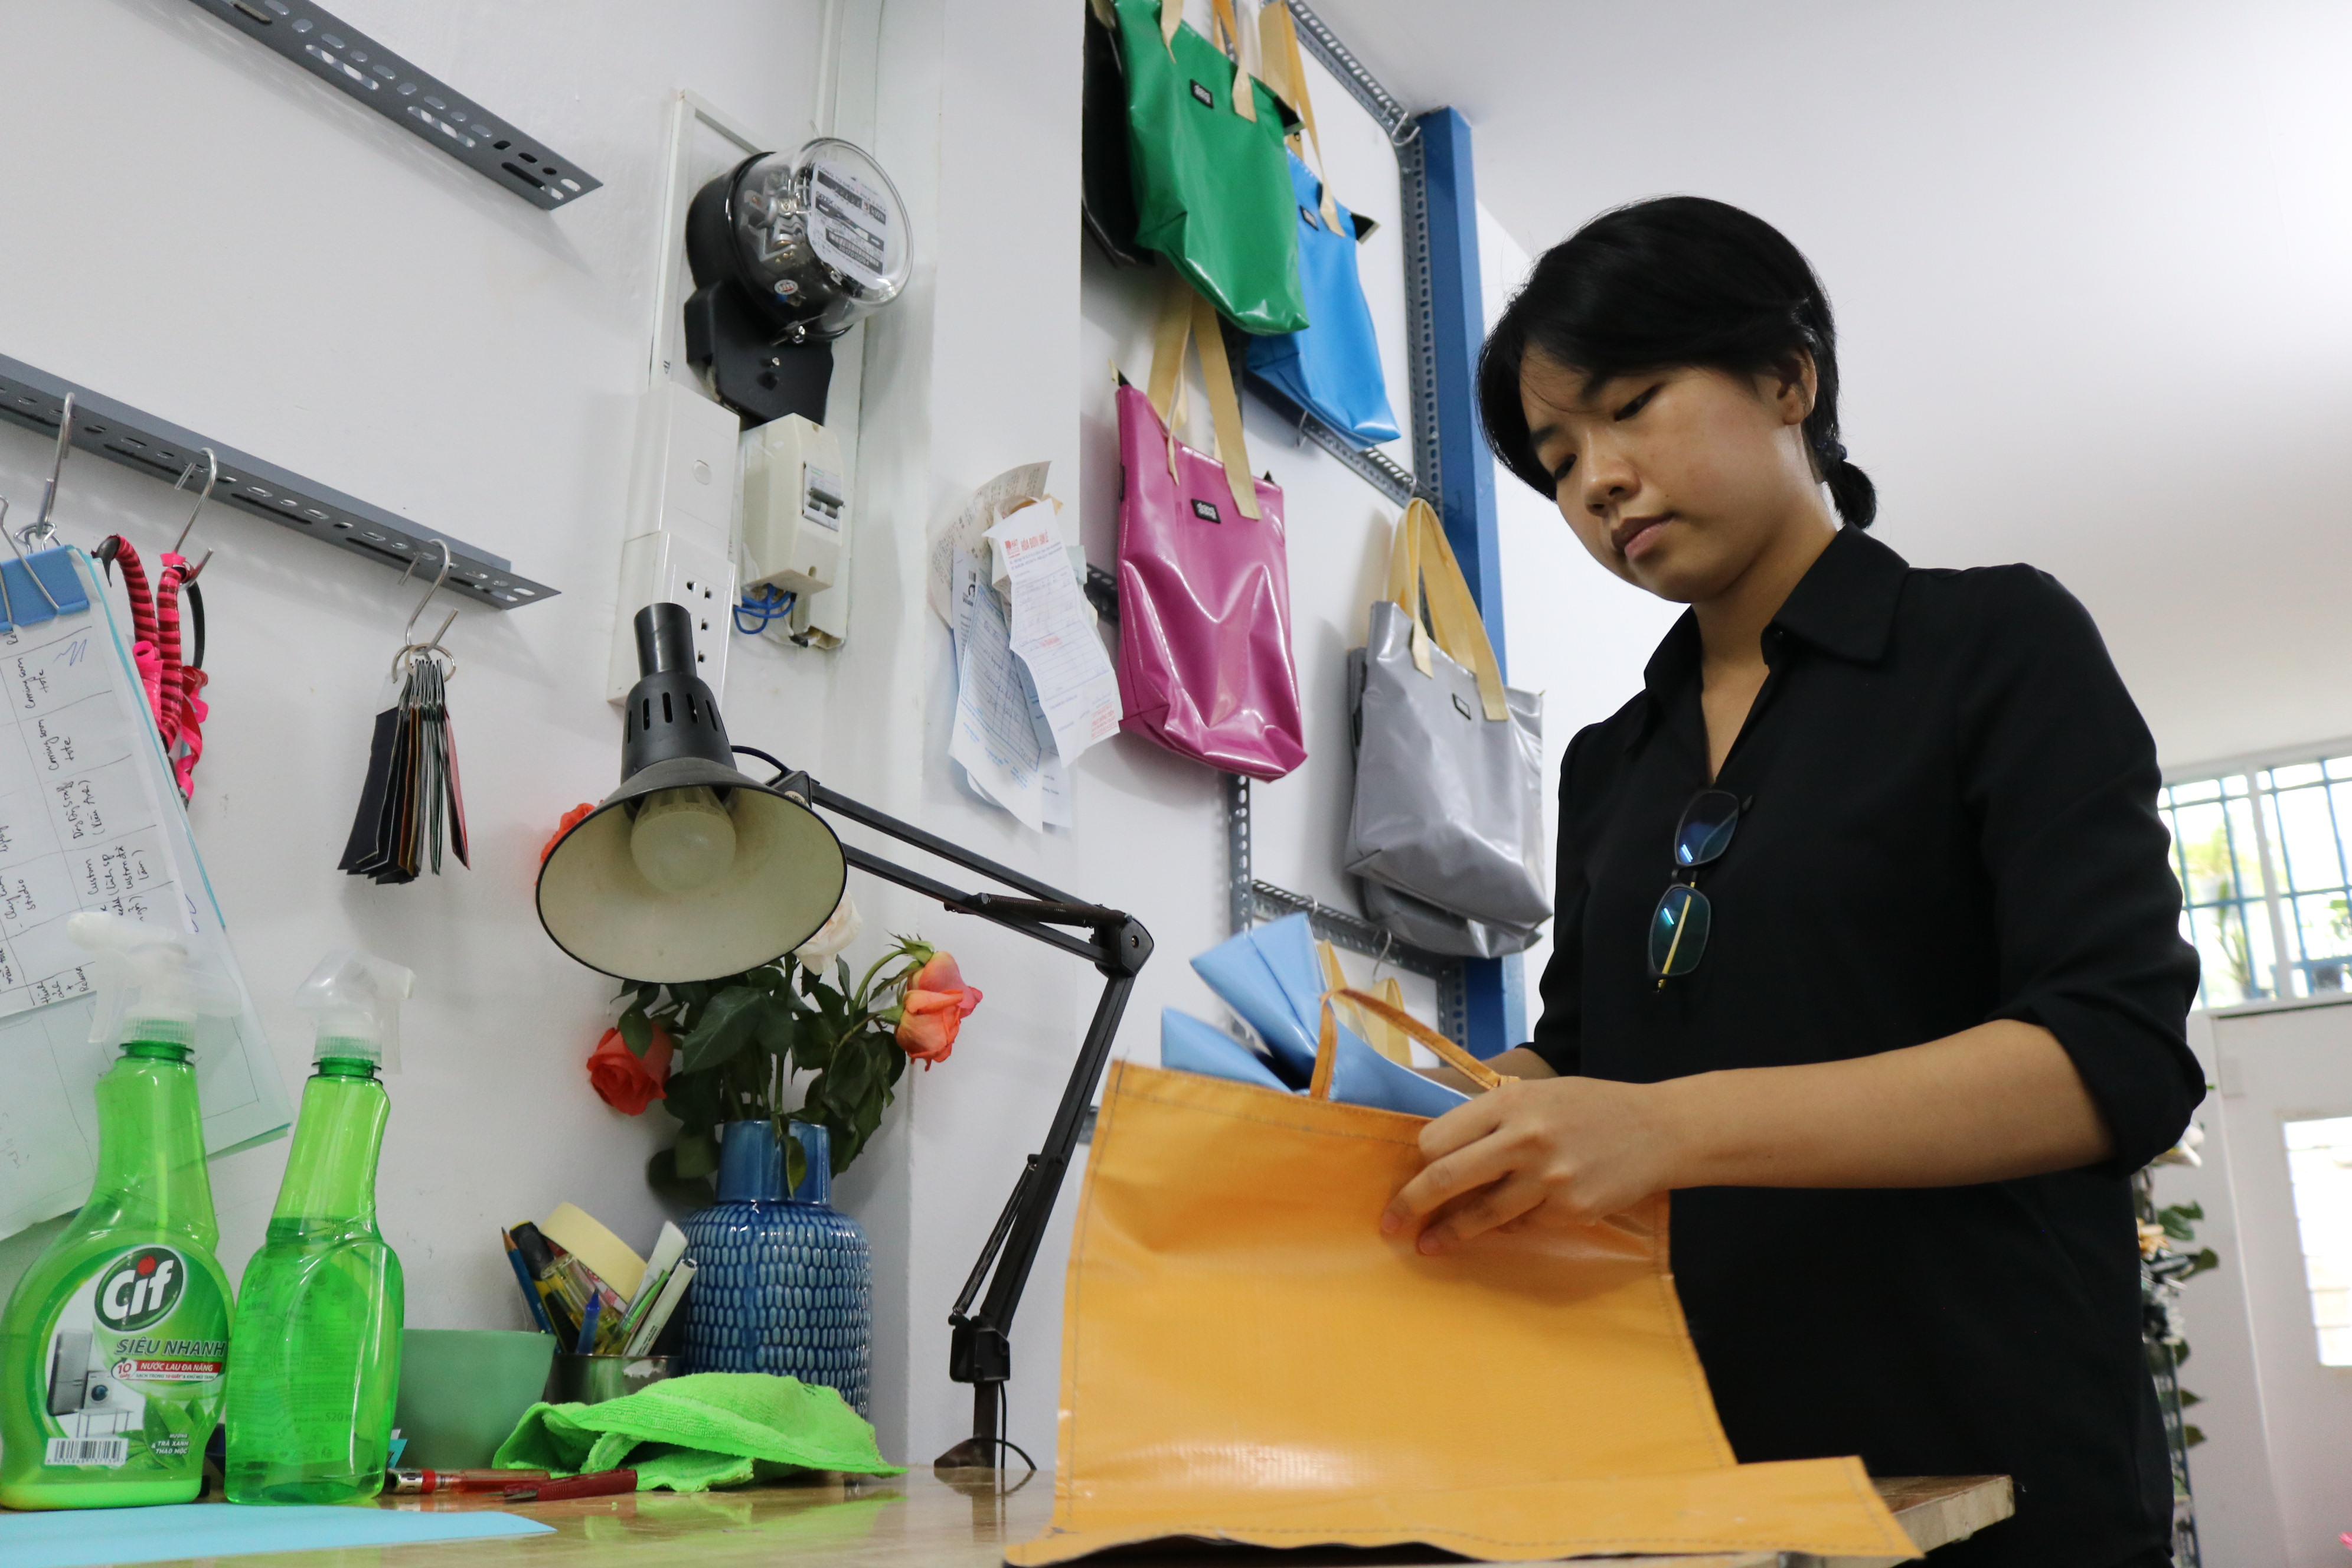 Tu Quan, a member of Dong Dong Sai Gon, packages a tote bag for delivery to a customer at the brand's workshop in Ho Chi Minh City, August 2020. Photo: Hoang An / Tuoi Tre